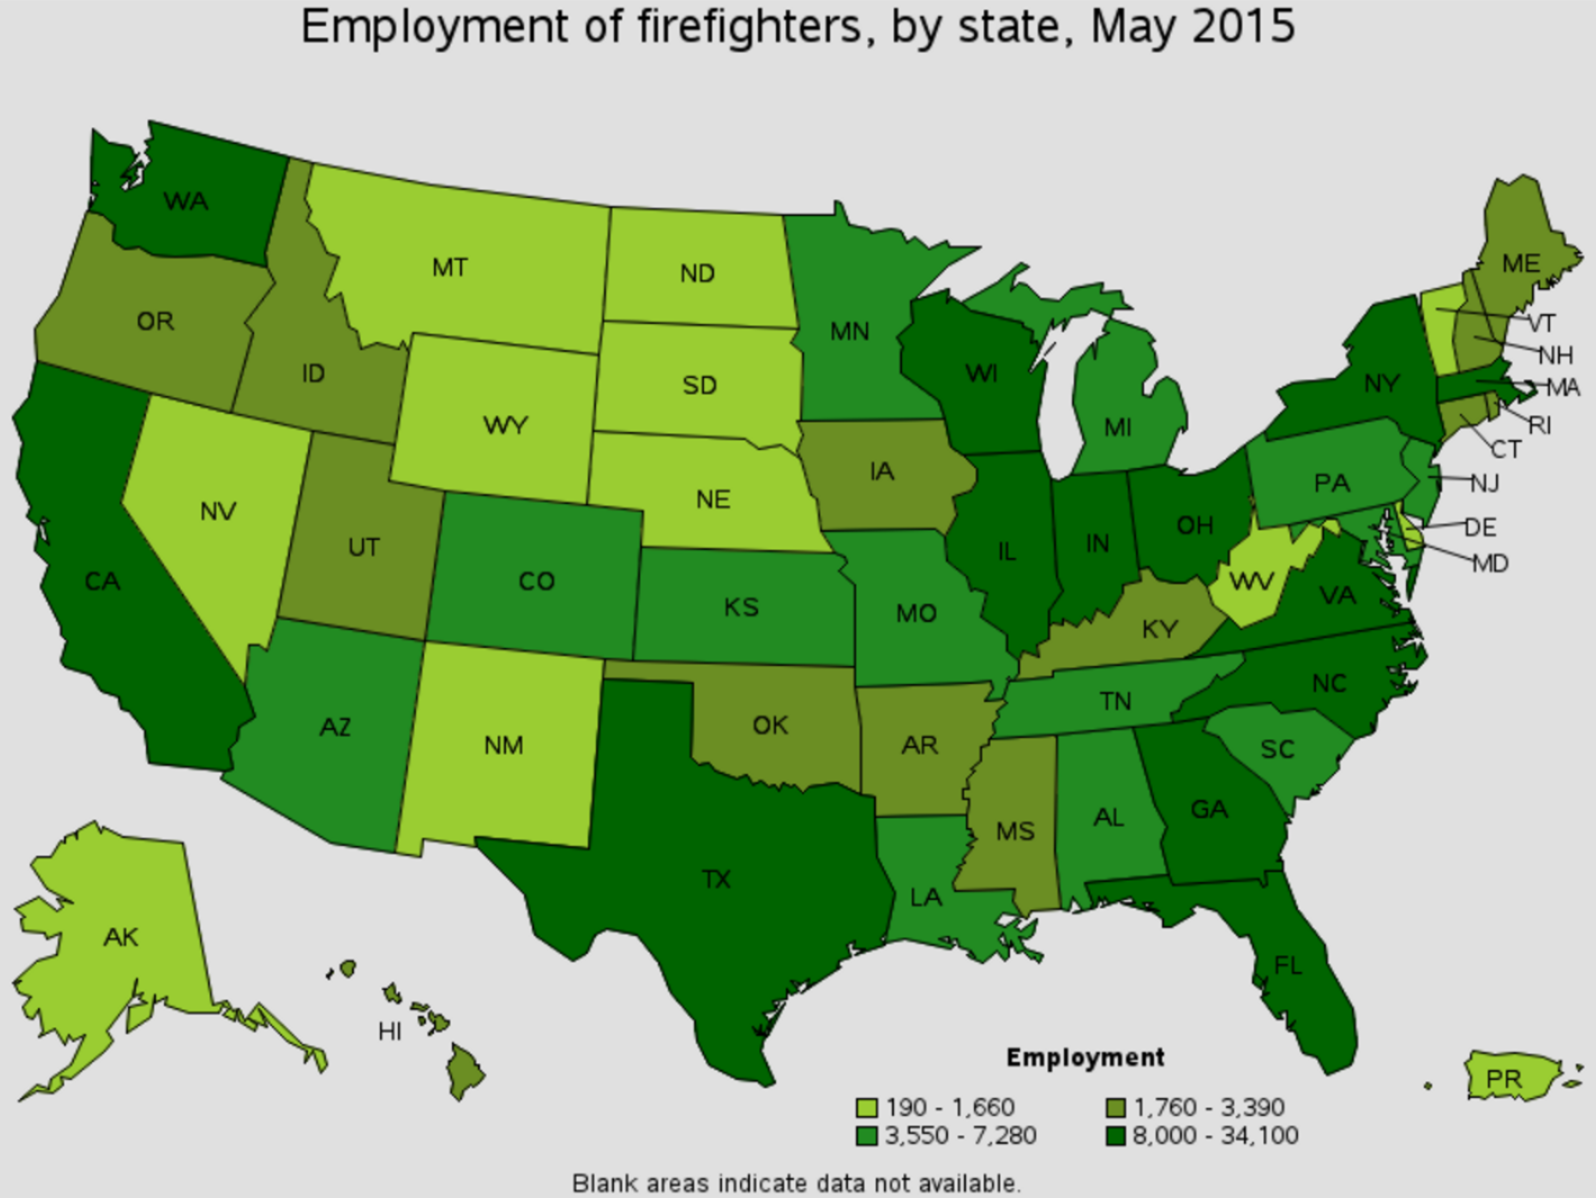 firefighter job outlook by state Tucumcari New Mexico